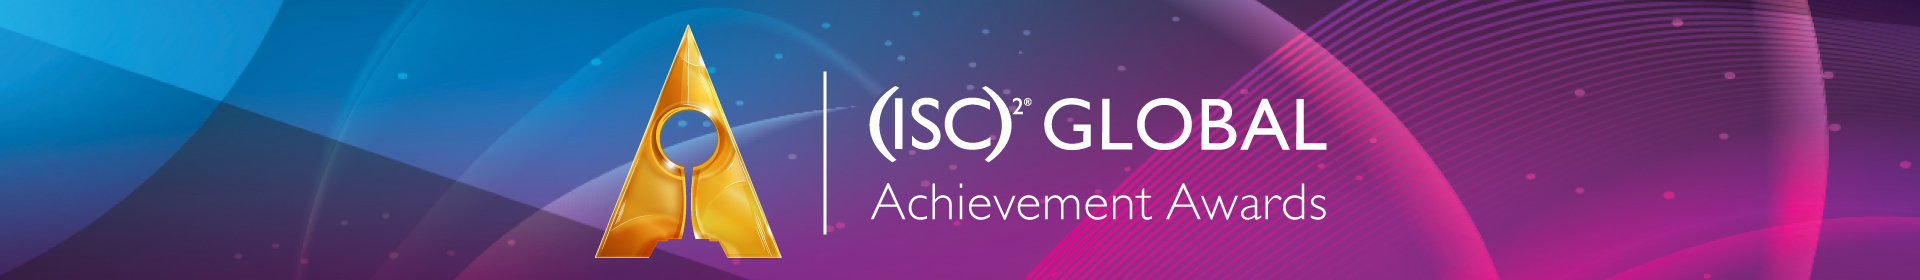 2021 (ISC)² Global Achievement Awards Event Banner